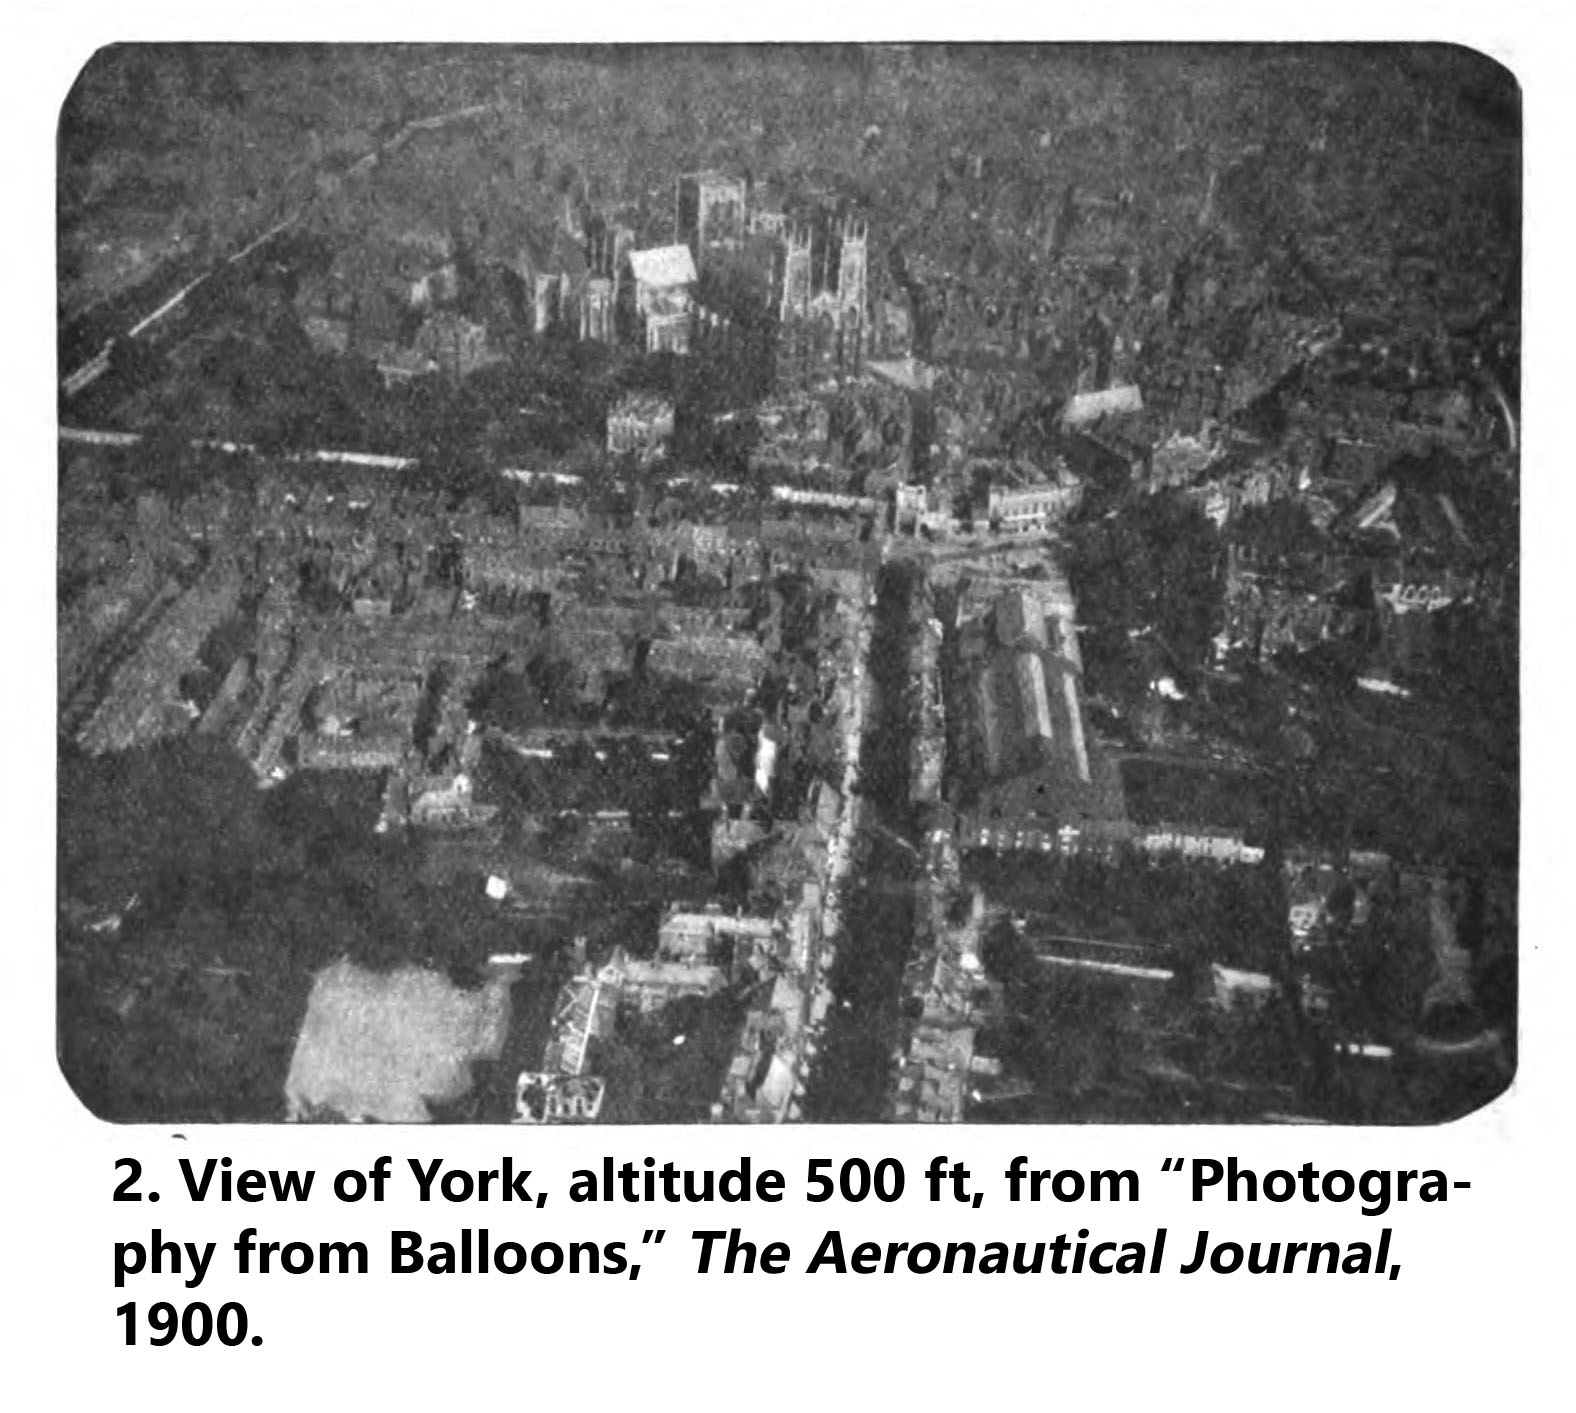 Aerial photo of the City of York from 500 ft, 1900